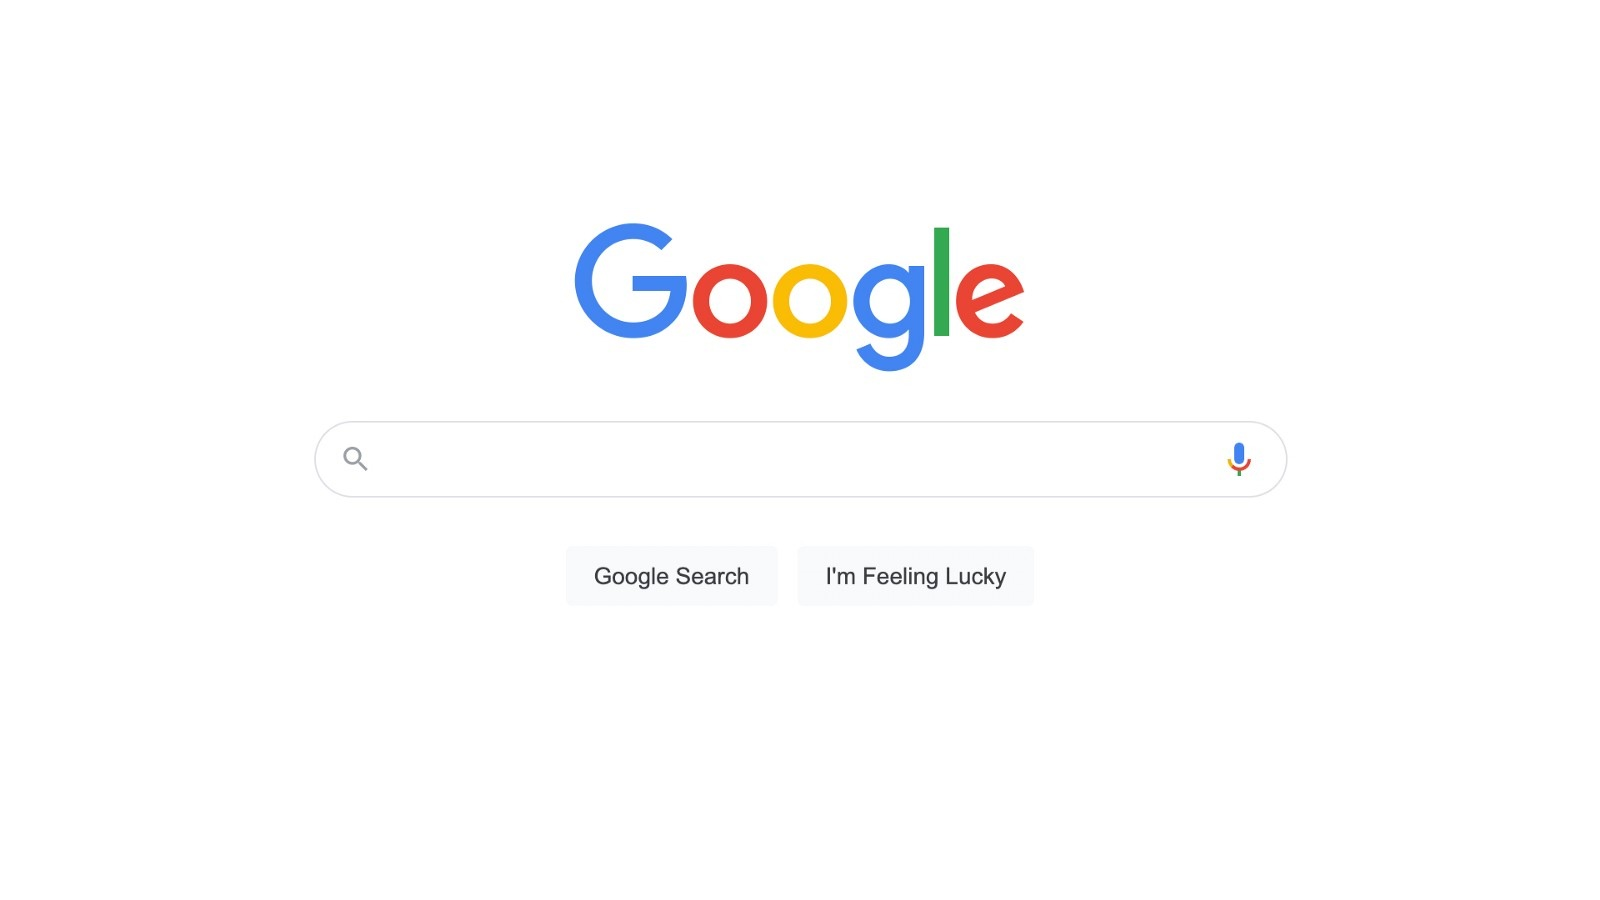 The Google homepage is an excellent example of minimal, non-distracting design